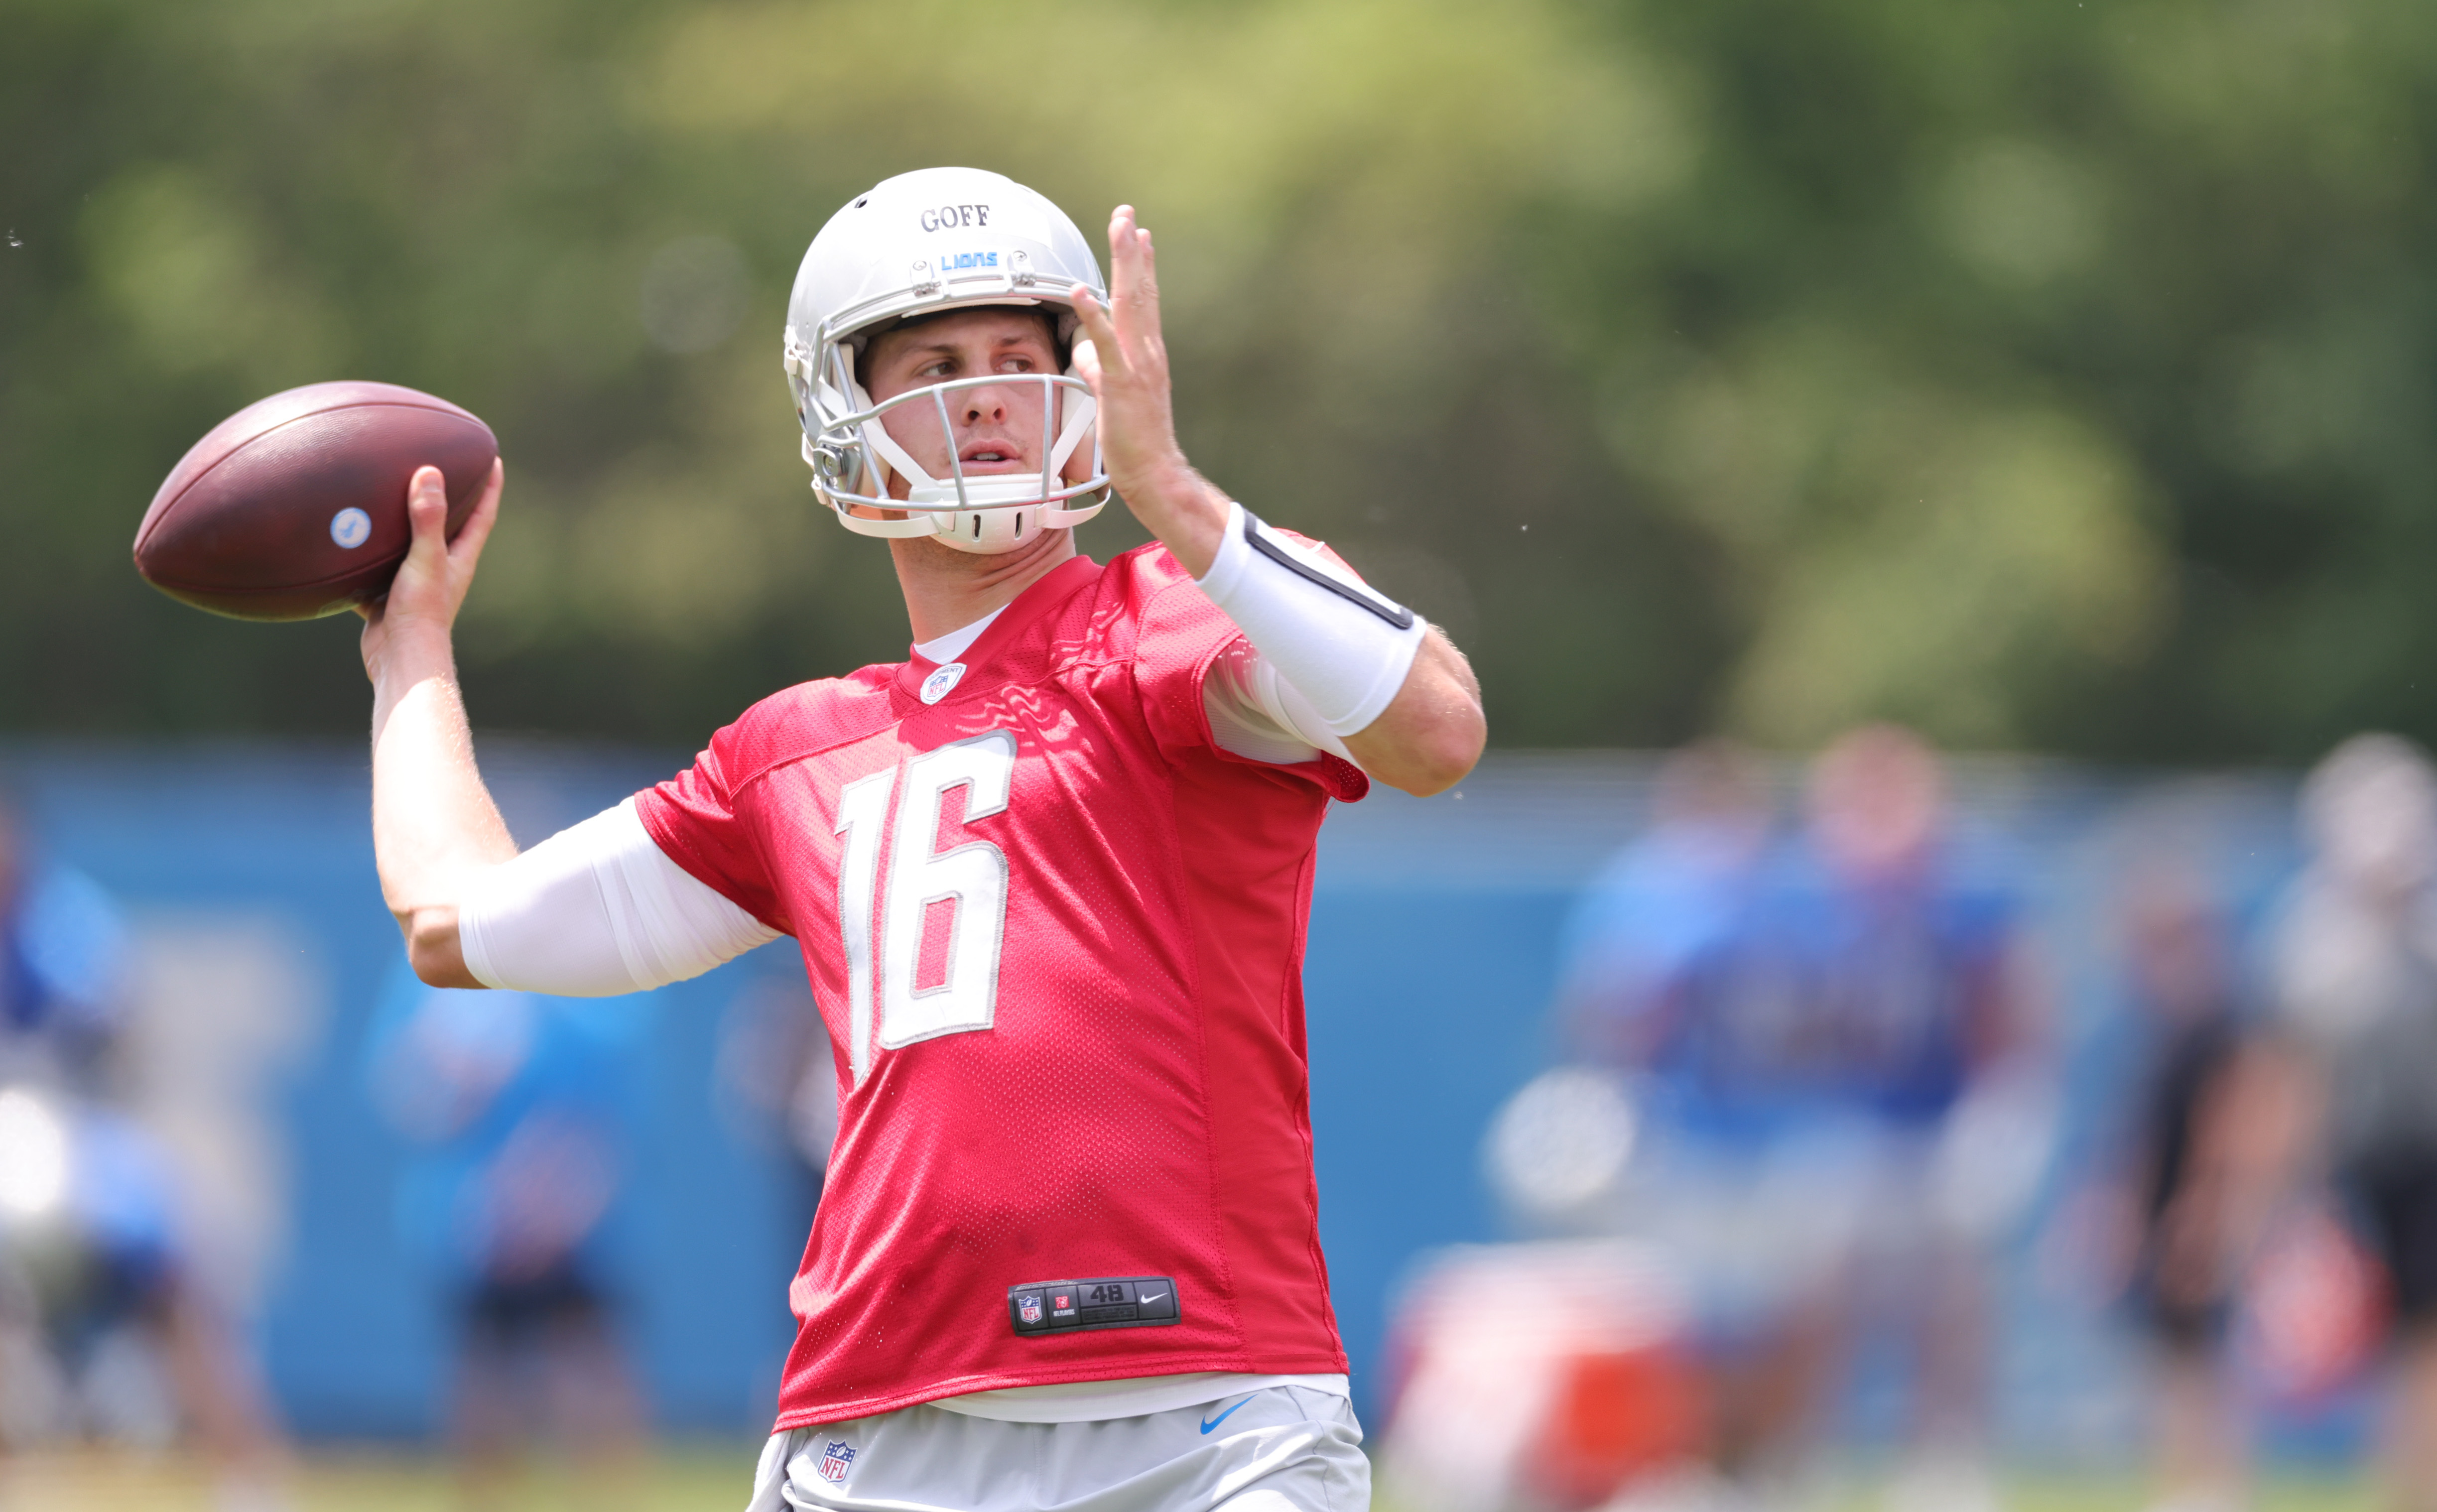 Jared Goff #16 of the Detroit Lions drops back to pass during the afternoon practice session on June 09, 2021 in Allen Park, Michigan.